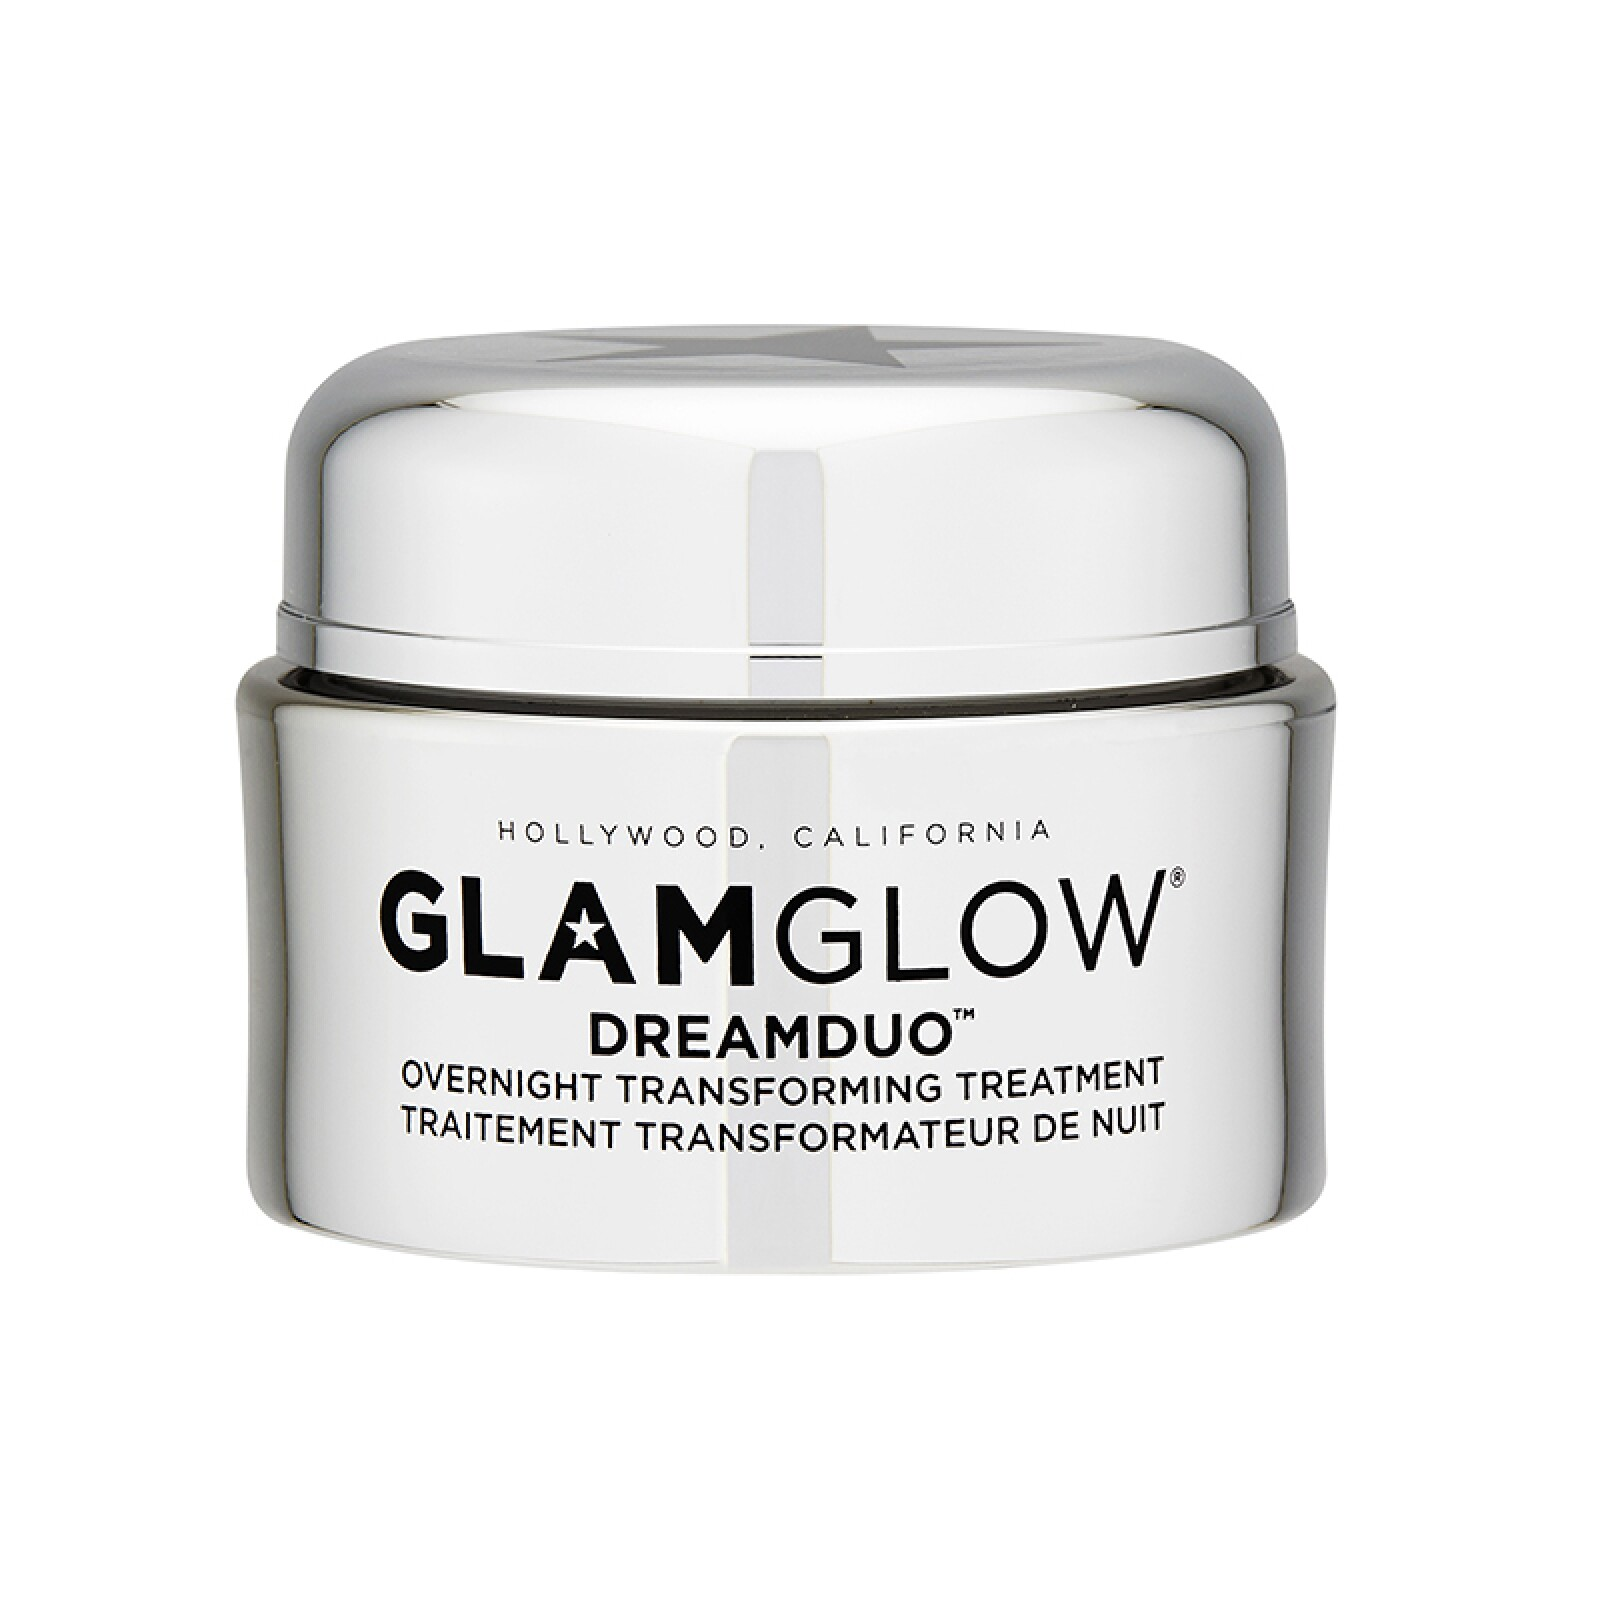 Glamglow-Dream-Duo-Overnight-Transforming-Treatment.jpg